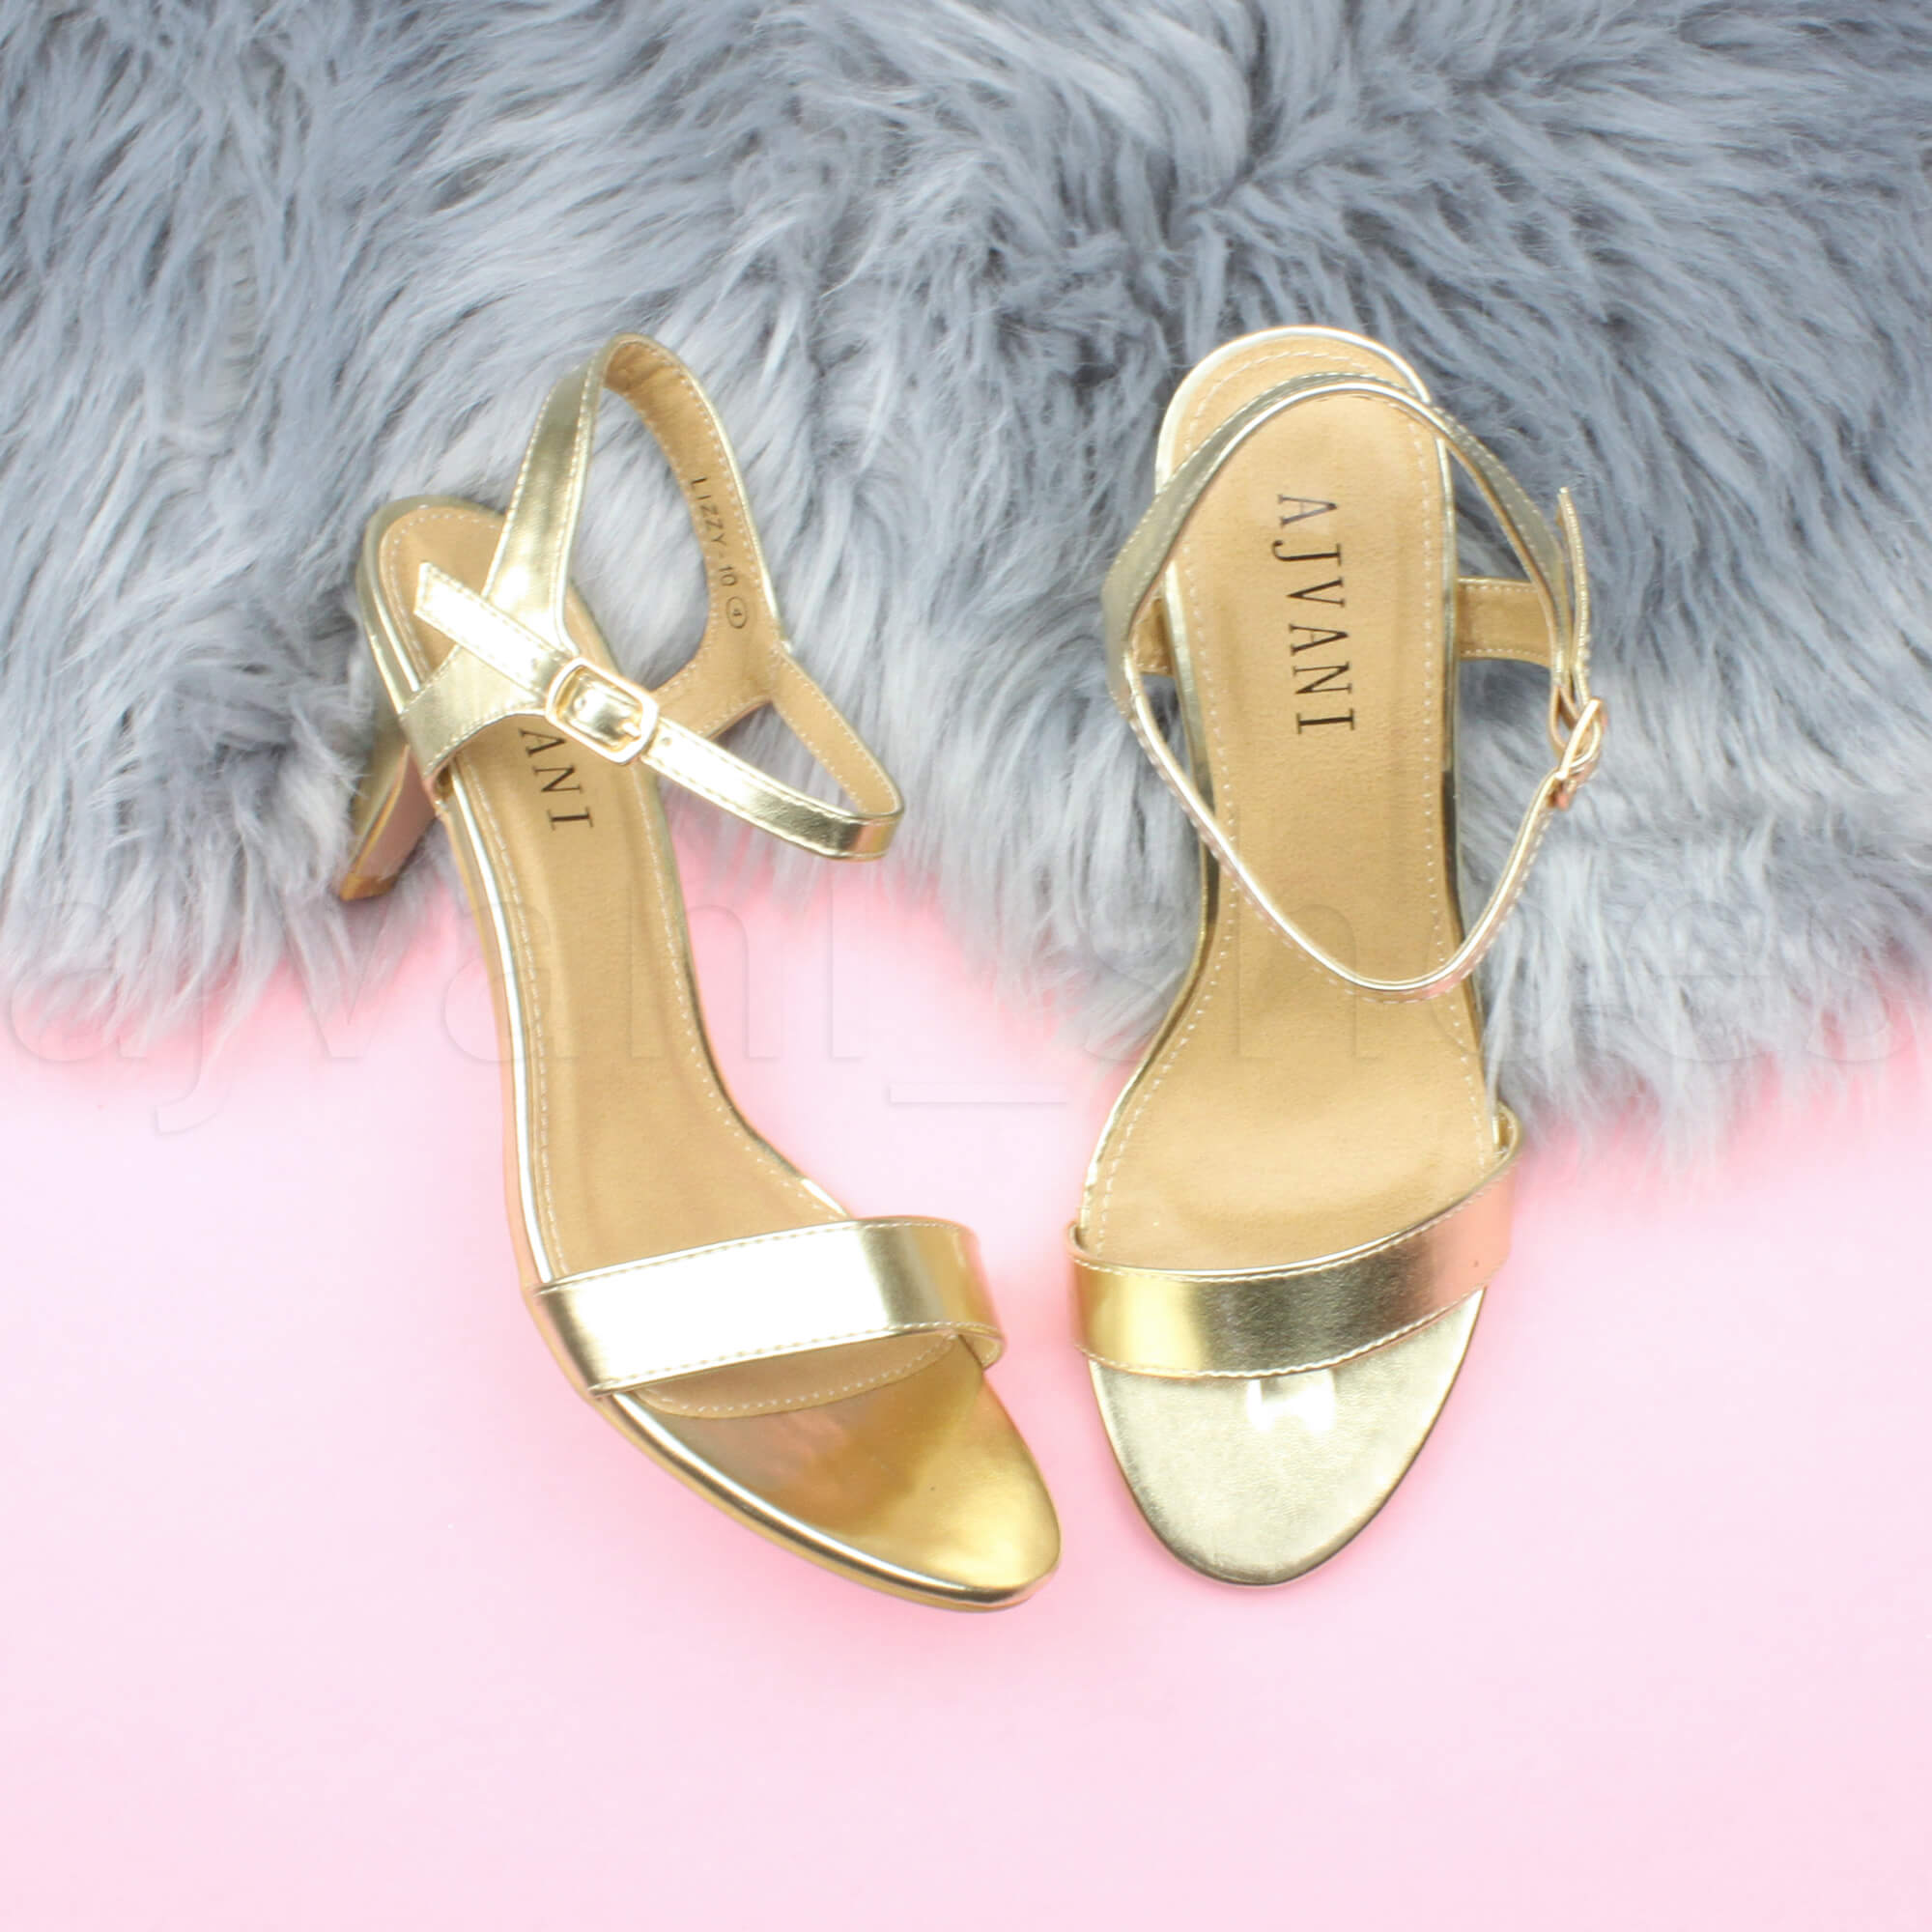 WOMENS-LADIES-HIGH-HEEL-BUCKLE-STRAPPY-BASIC-BARELY-THERE-SANDALS-SHOES-SIZE thumbnail 47